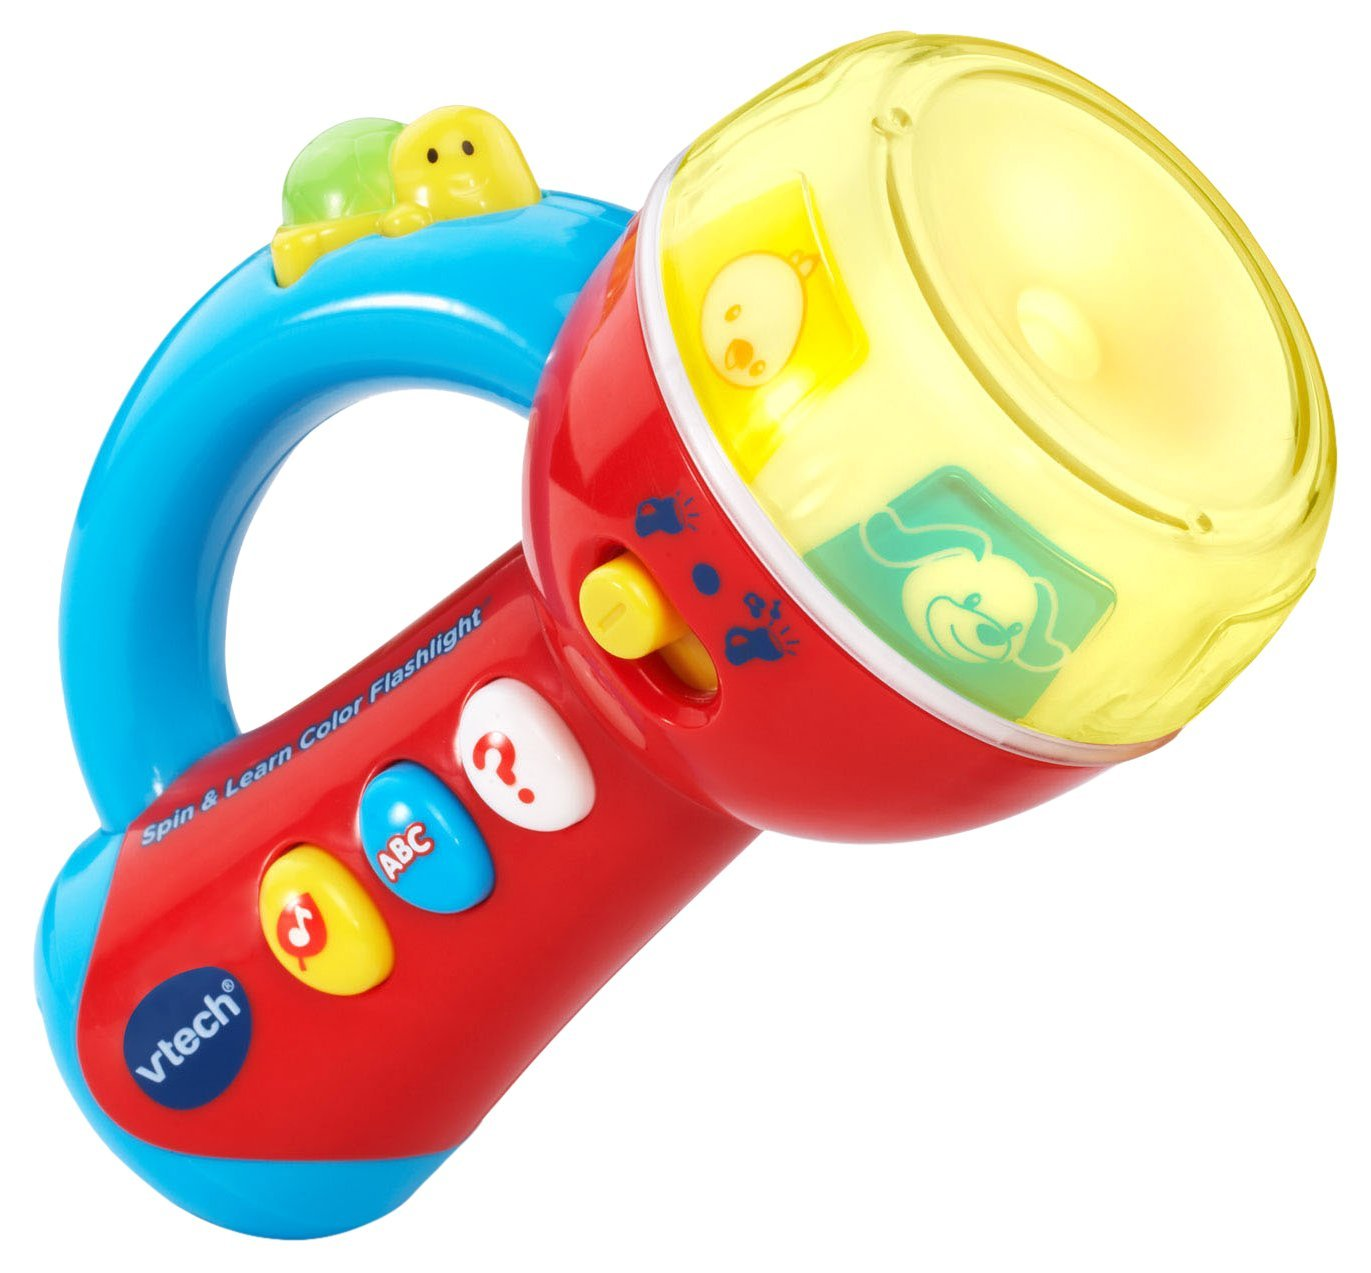 VTech Spin and Learn Color Flashlight by